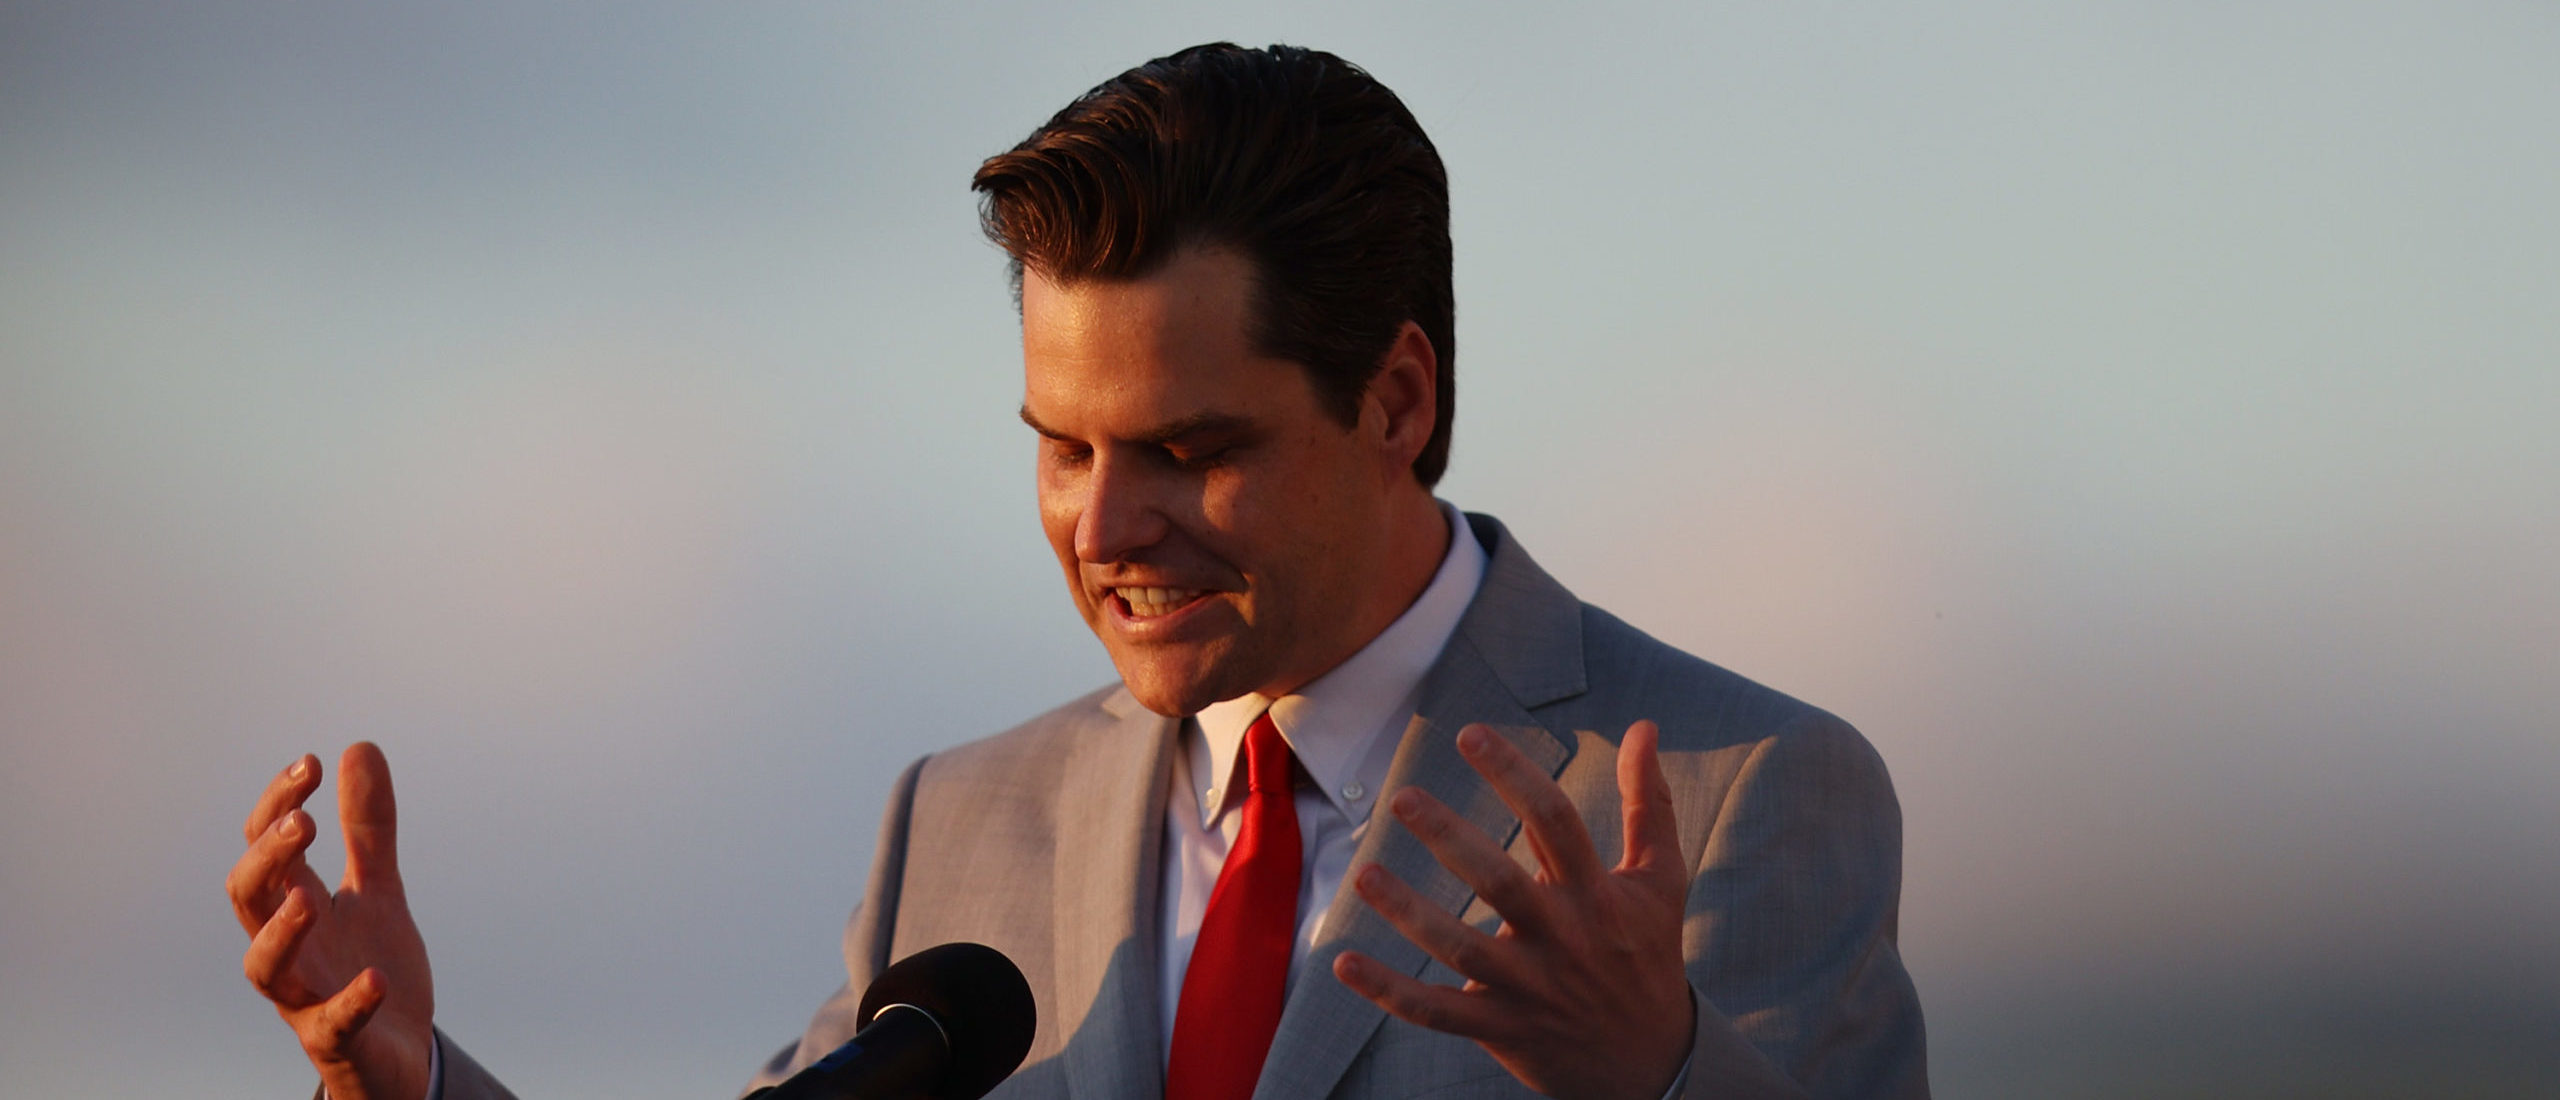 REPORT: Rep. Gaetz's Alleged Wingman Writes Confession Claiming Pair Had Sex With Underage Girl